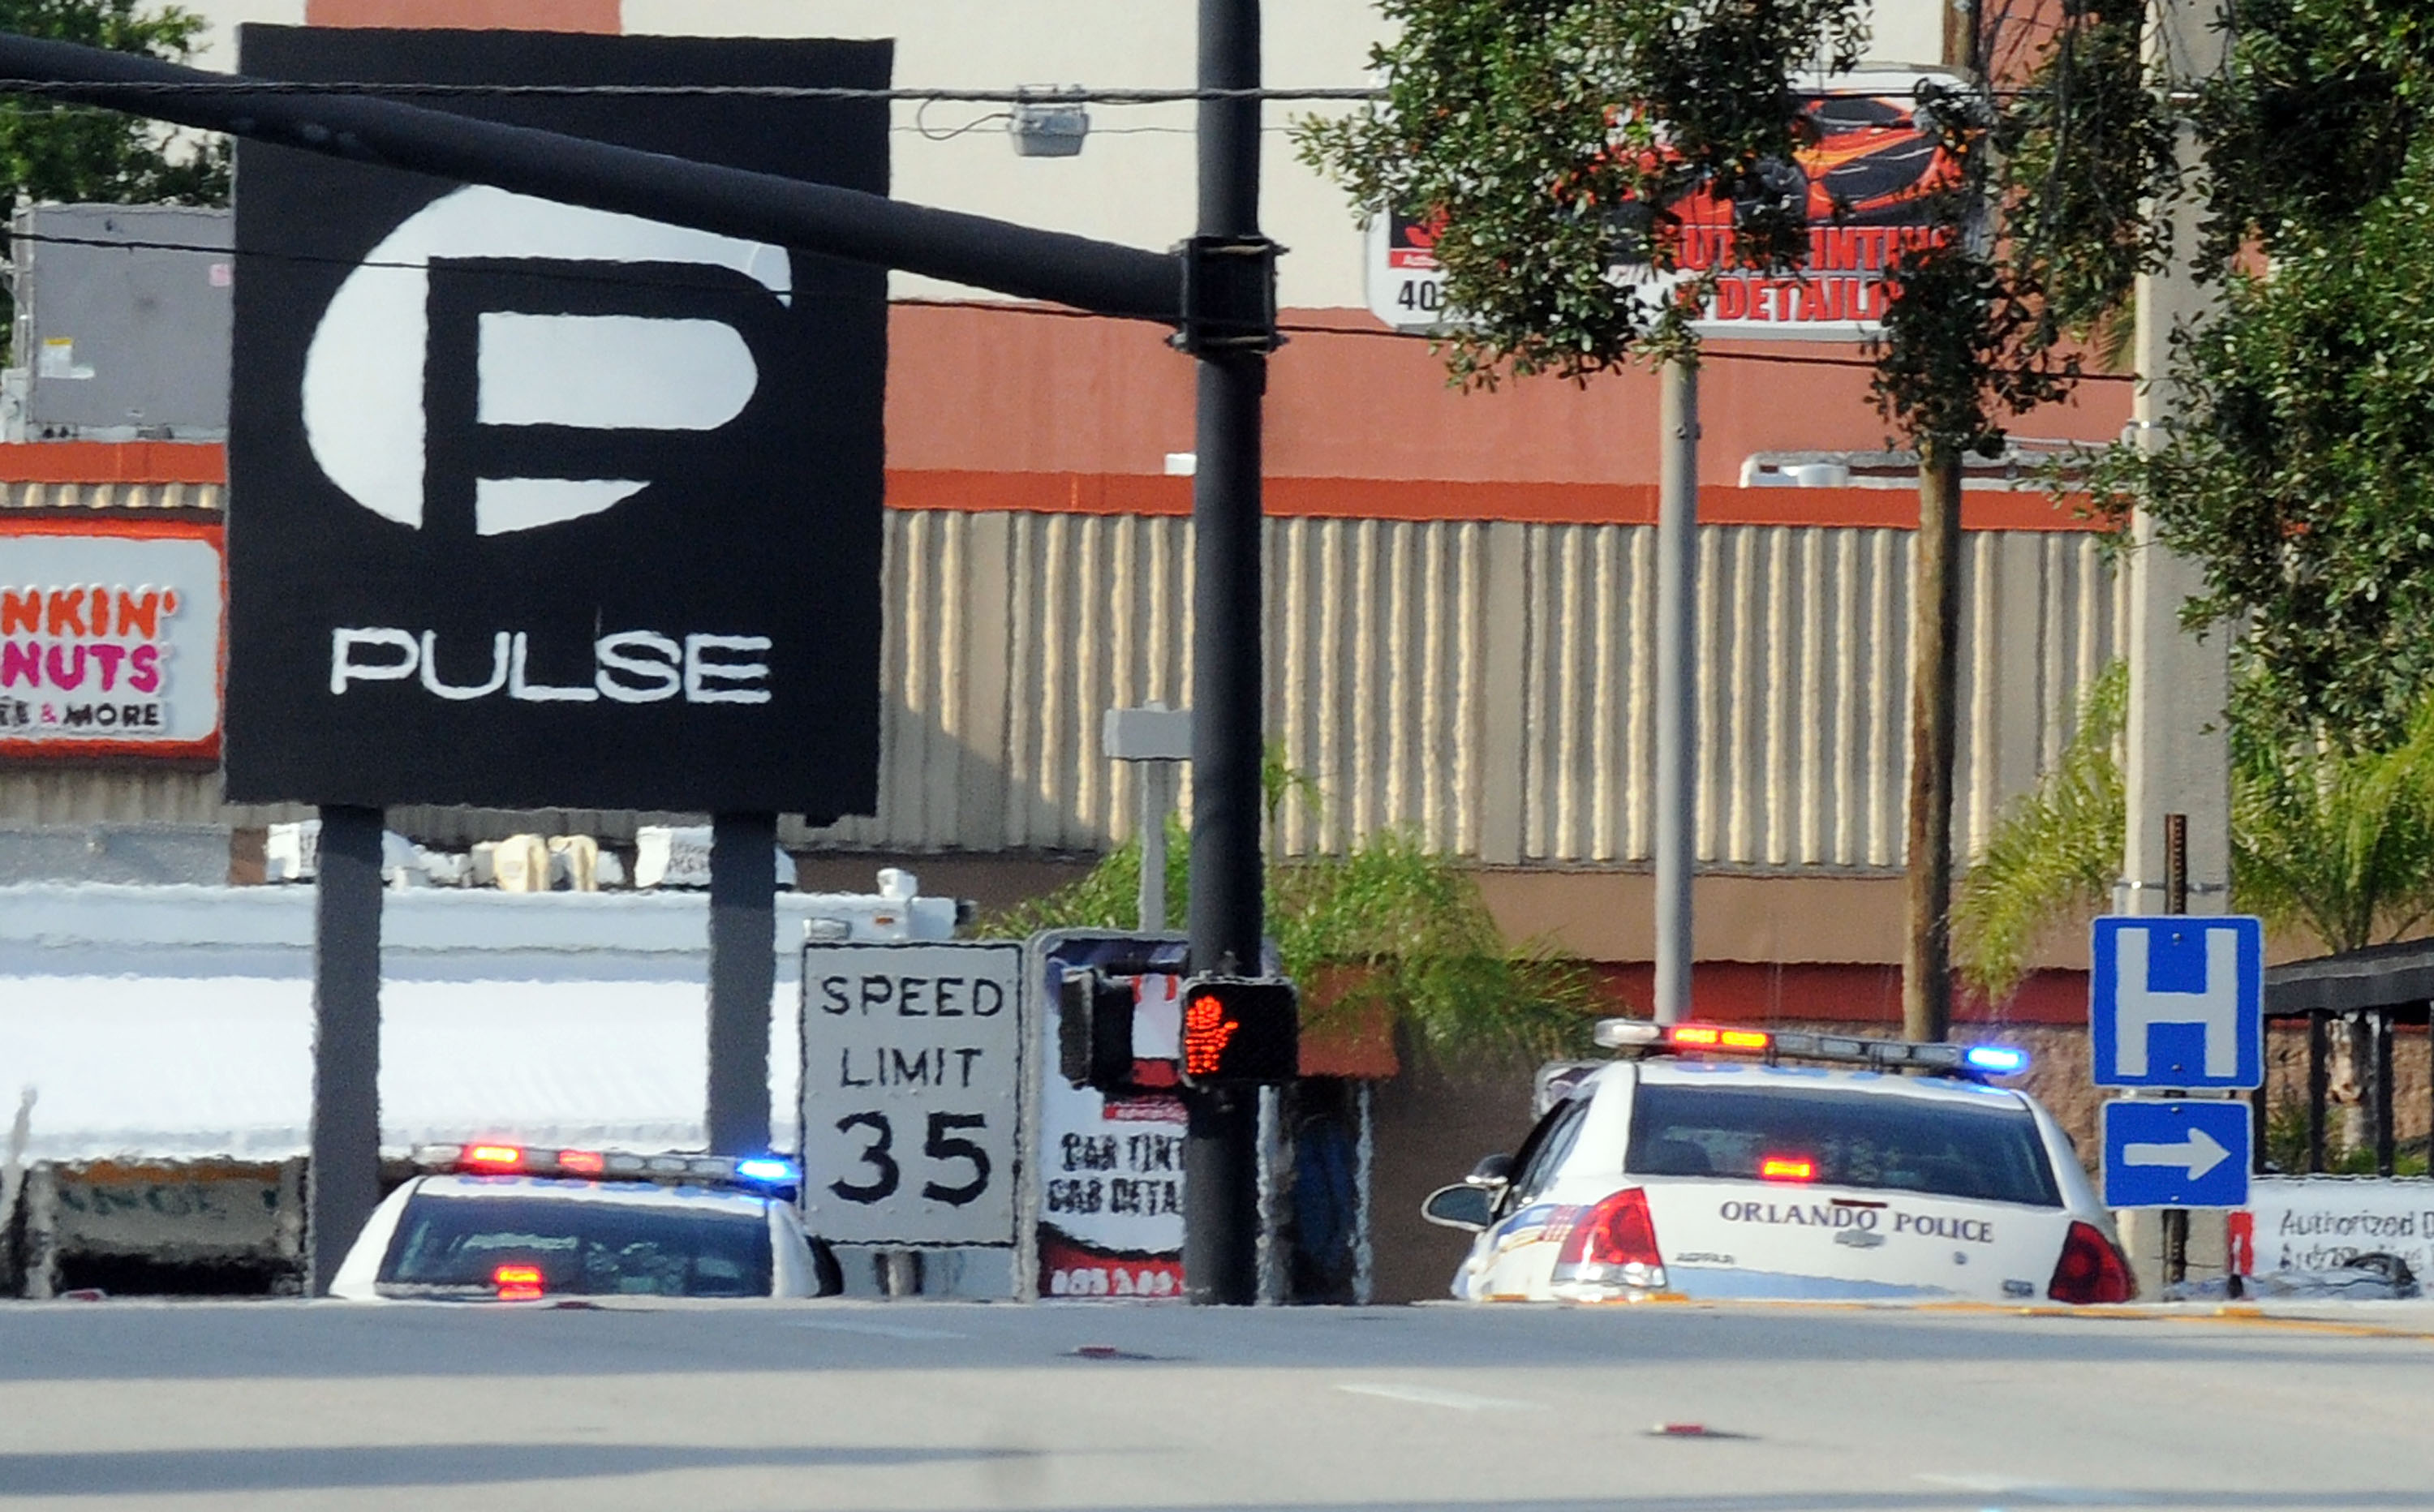 Orlando police officers seen outside of Pulse nightclub after a fatal shooting and hostage situation on June 12, 2016 in Orlando, Florida. Gerardo Mora—Getty Images